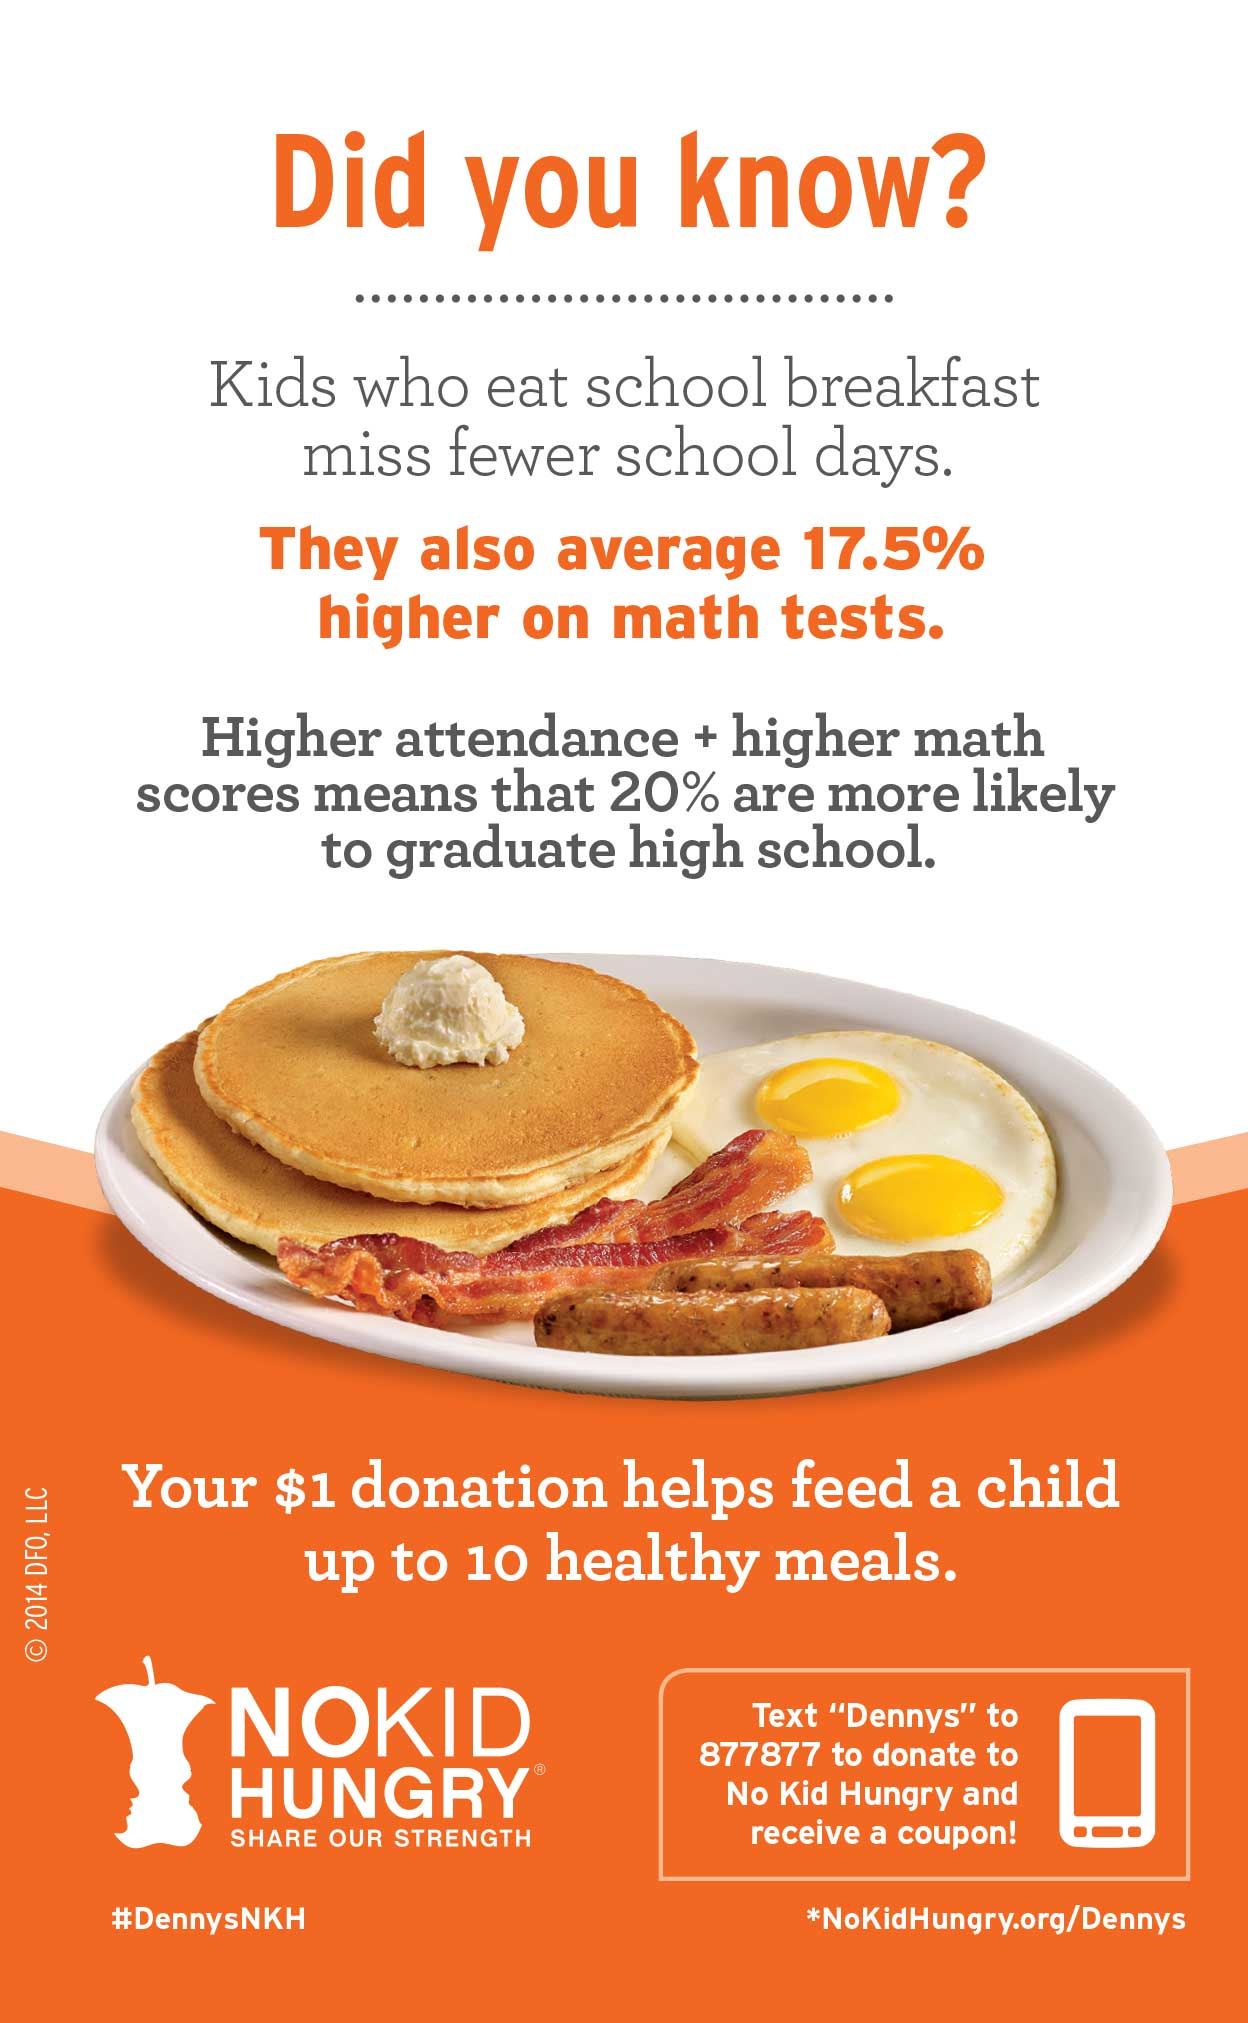 Contemporary Did You Know Hunger Just Text To Donate To No Kid Hungry Receive A Coupon Worth Off Tasty A Trip To Hq Test Kitchen Kids Struggle nice food Dennys Near Me